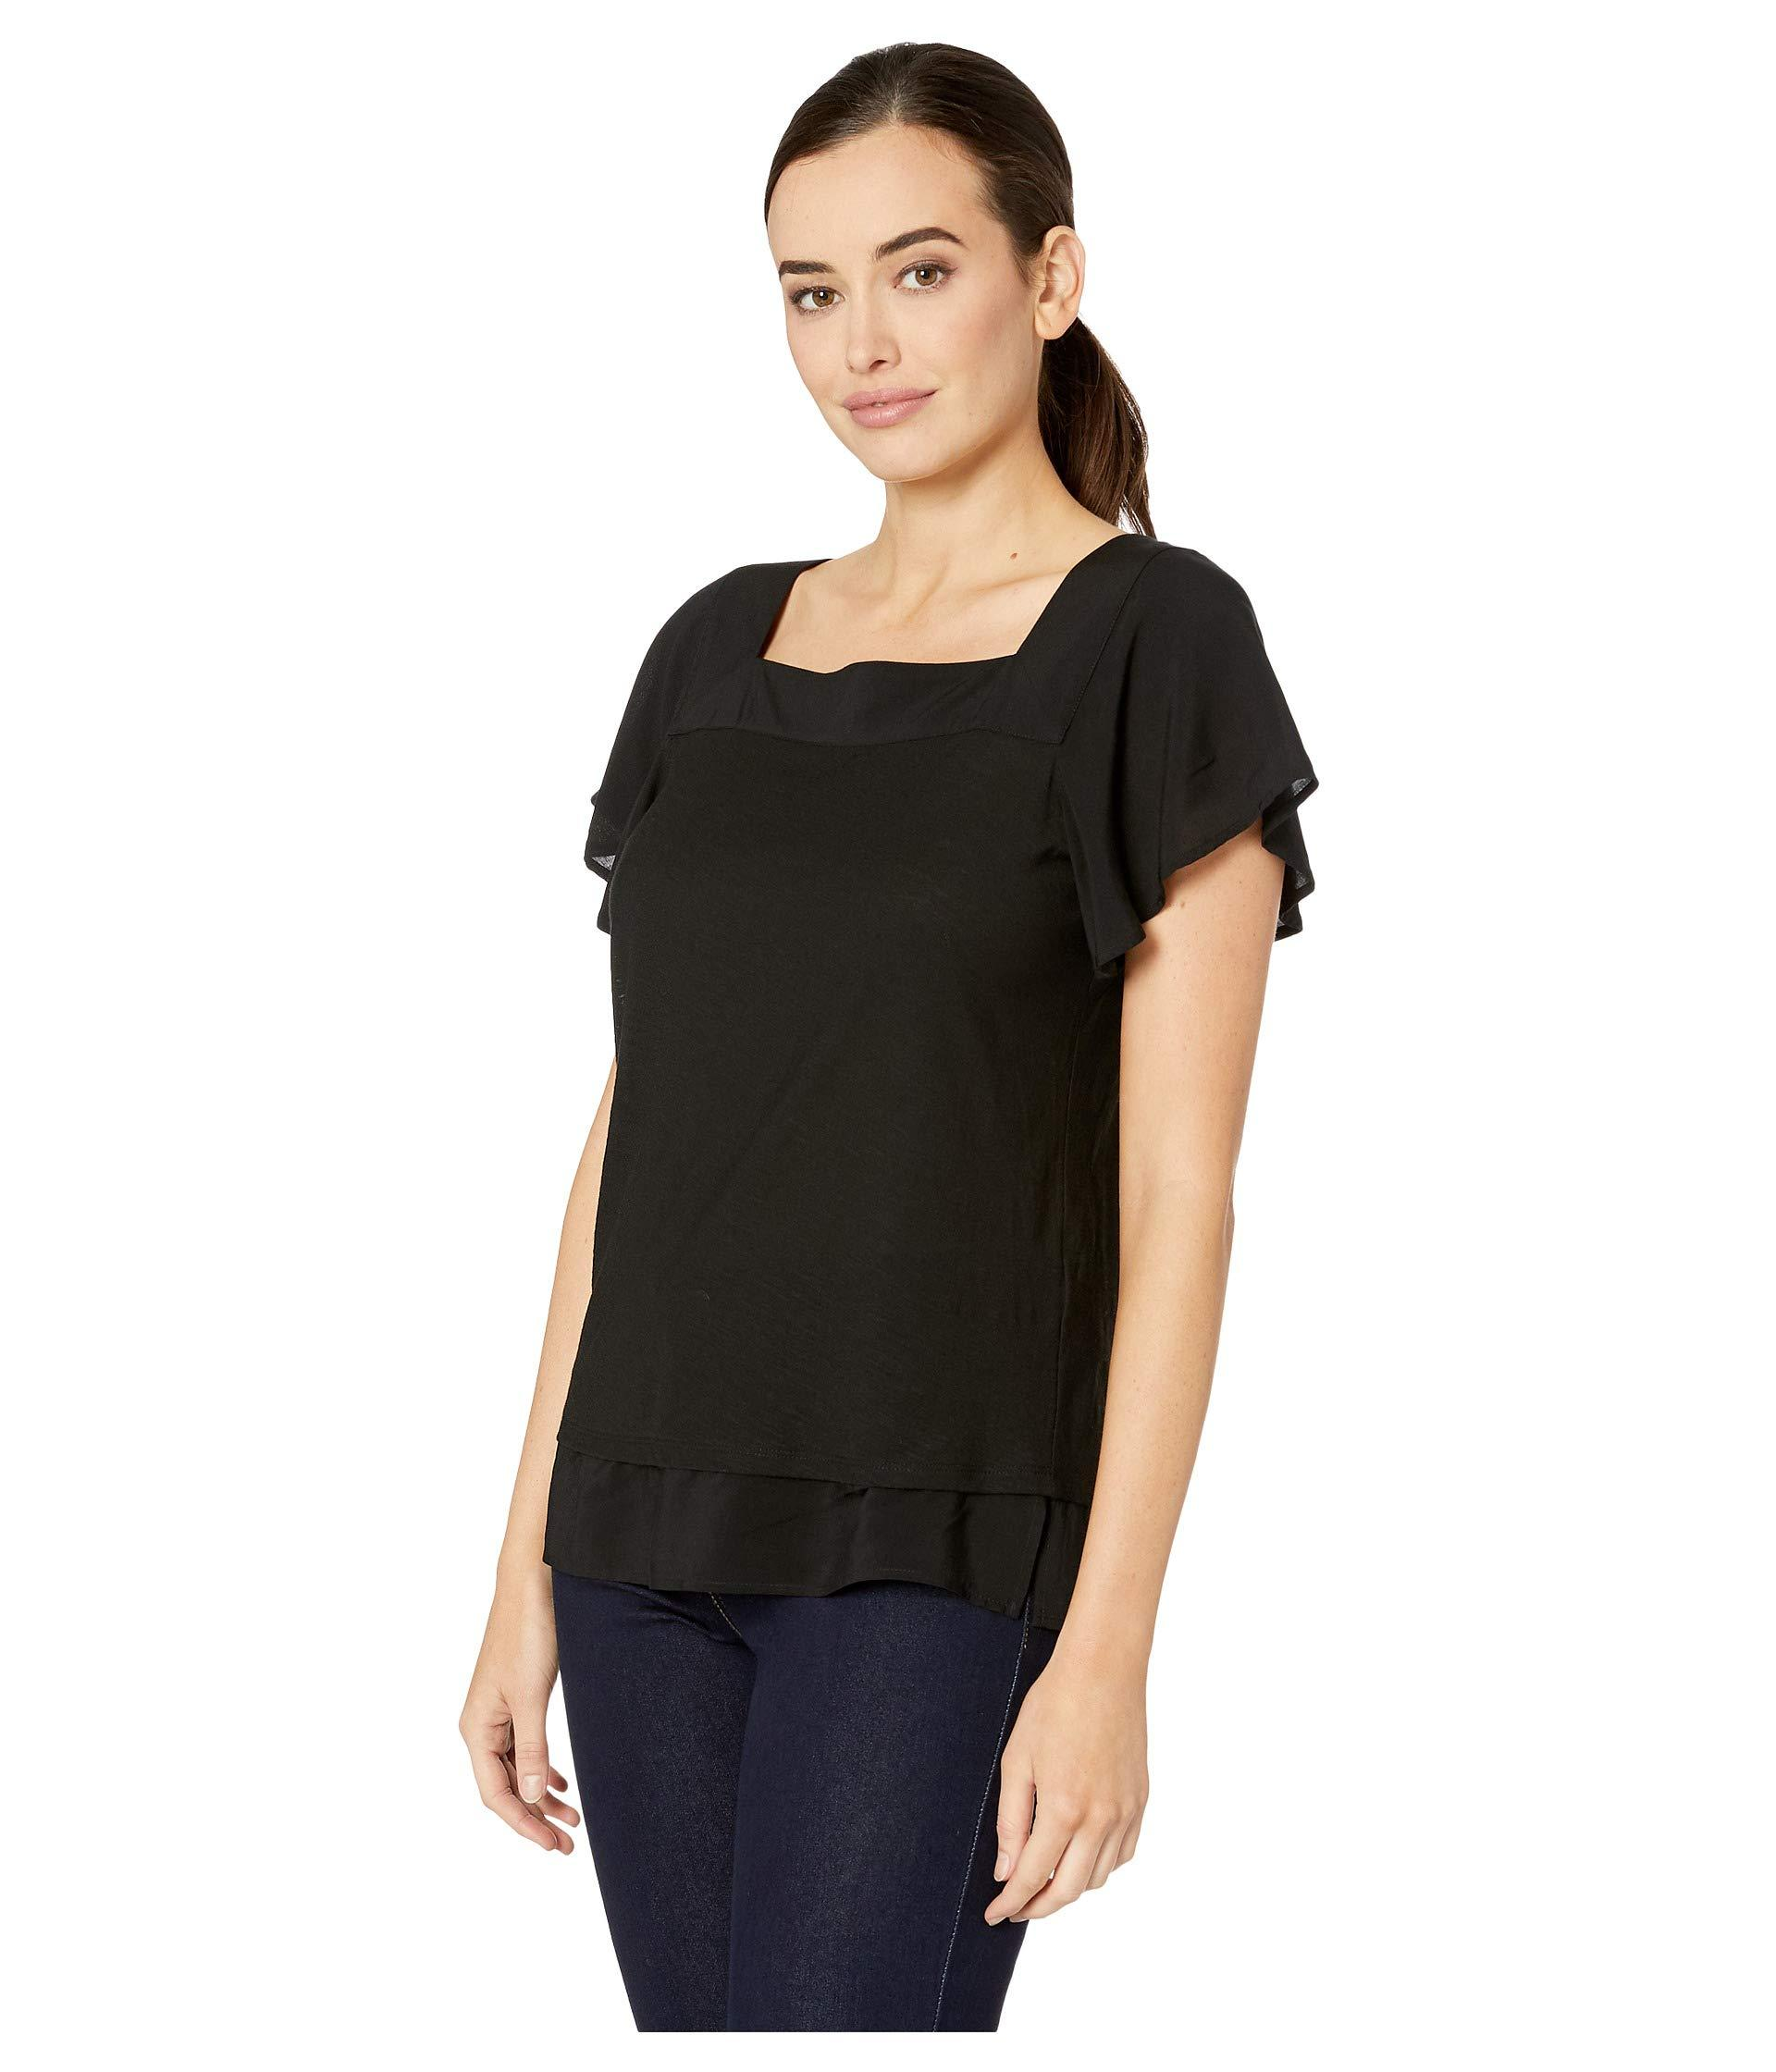 601b85b872b7 Lyst - Two By Vince Camuto Short Sleeve Squared Neck Layered Top (ultra  White) Women's Short Sleeve Pullover in Black